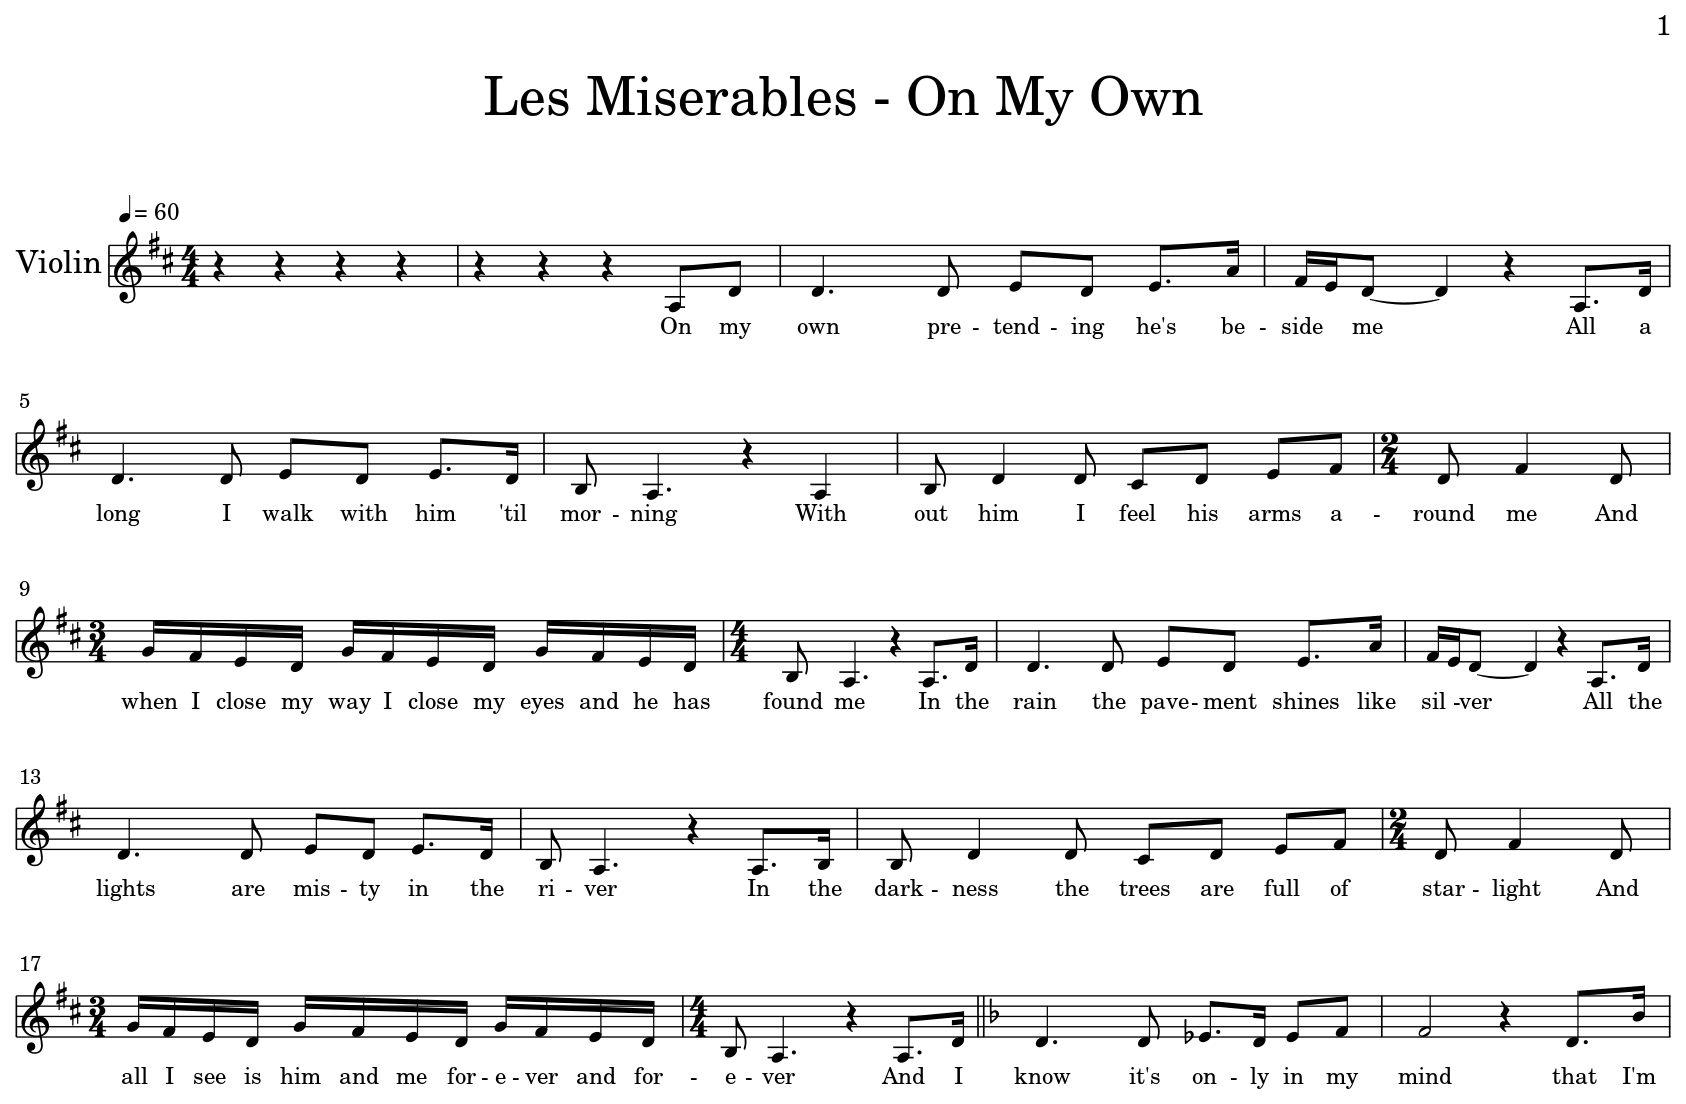 Les Miserables - On My Own - Flat